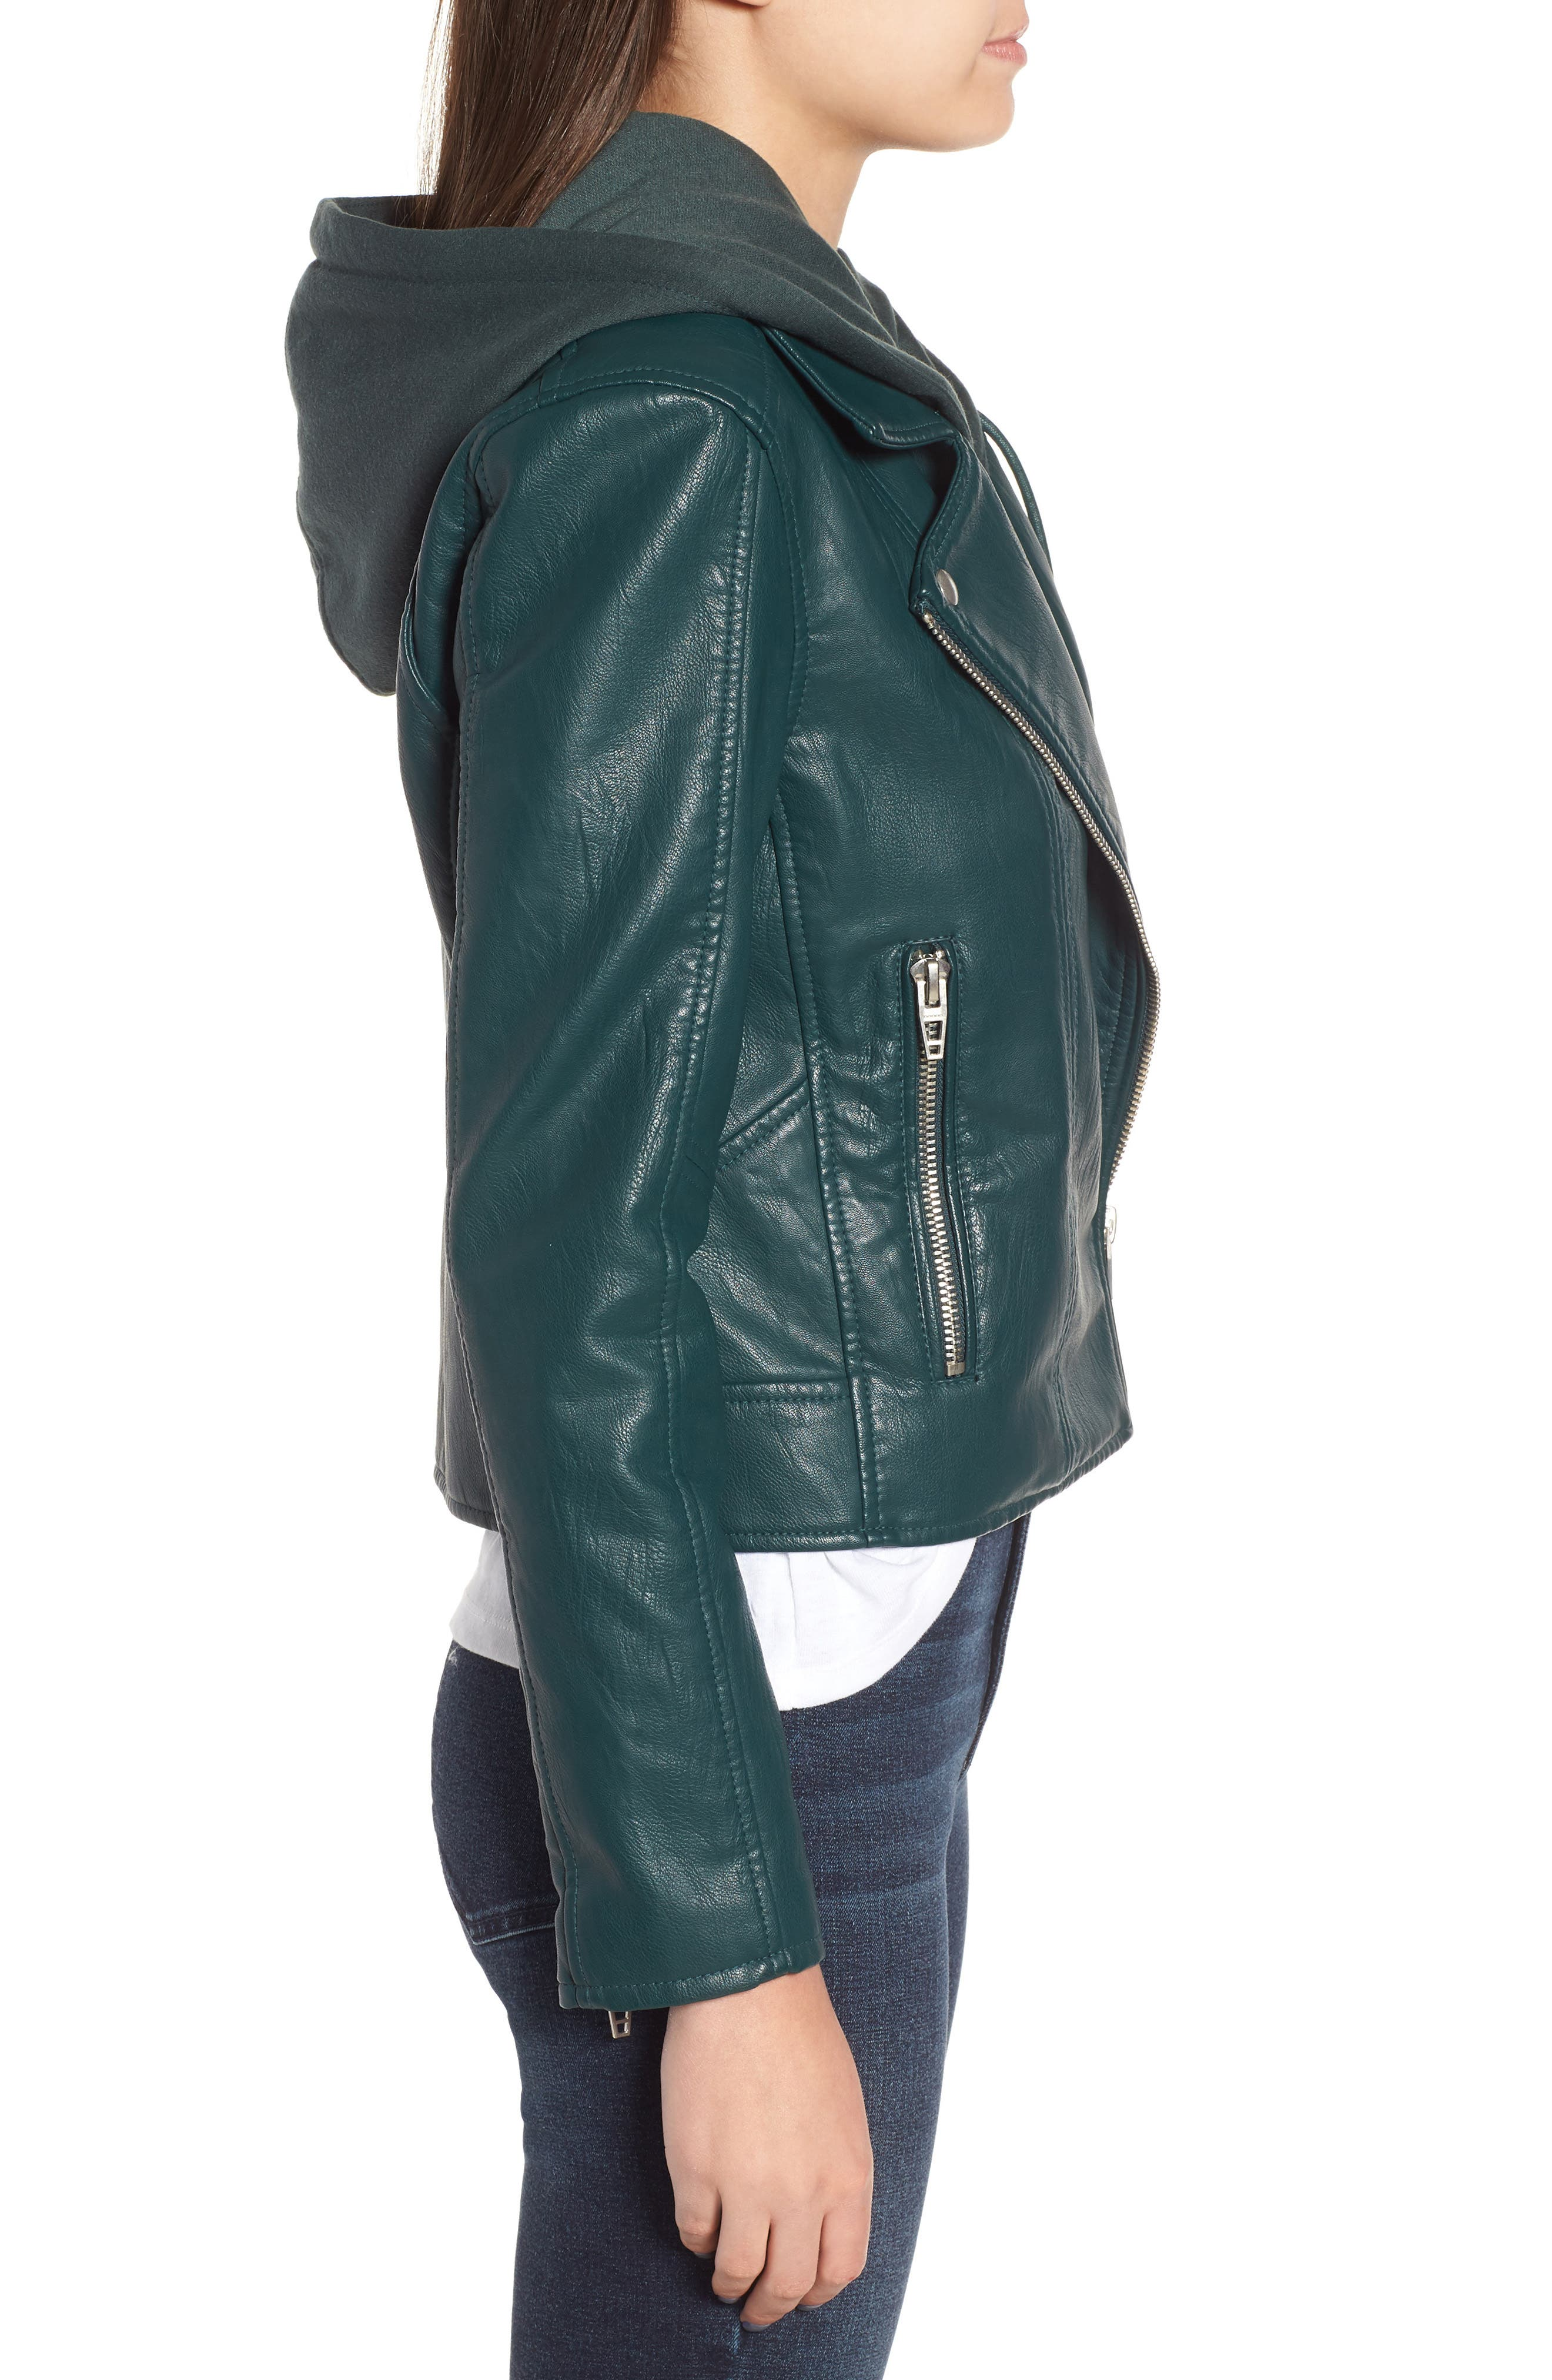 BLANKNYC, Meant to Be Moto Jacket with Removable Hood, Alternate thumbnail 4, color, EVERGREEN